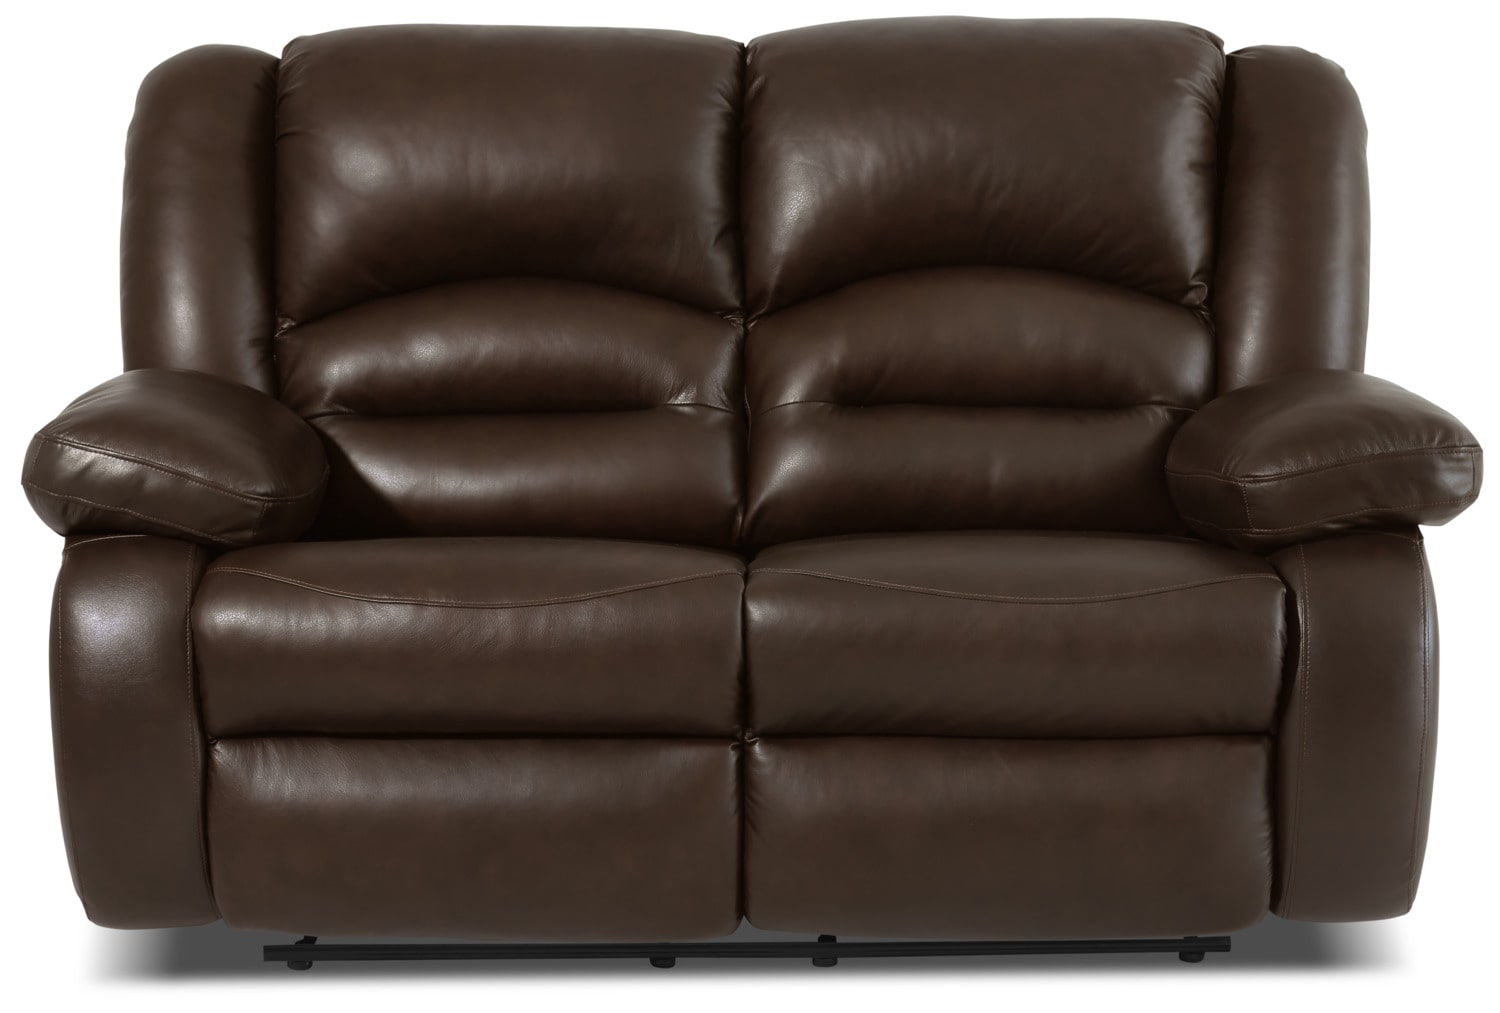 Living Room Furniture - Toreno Genuine Leather Power Reclining Loveseat – Brown